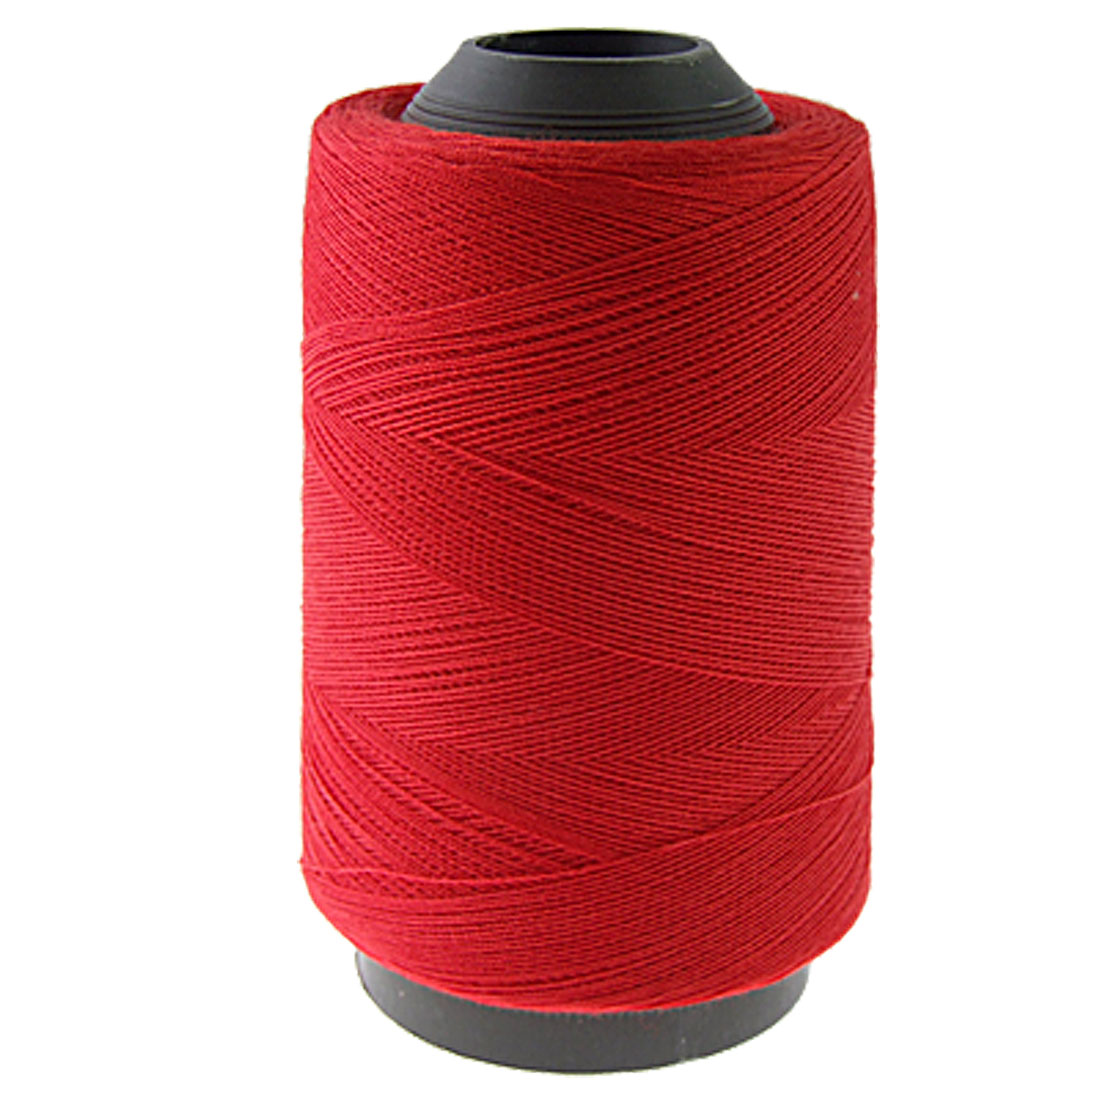 Red Cotton Sewing Thread Reel Spool Tailoring String 500m